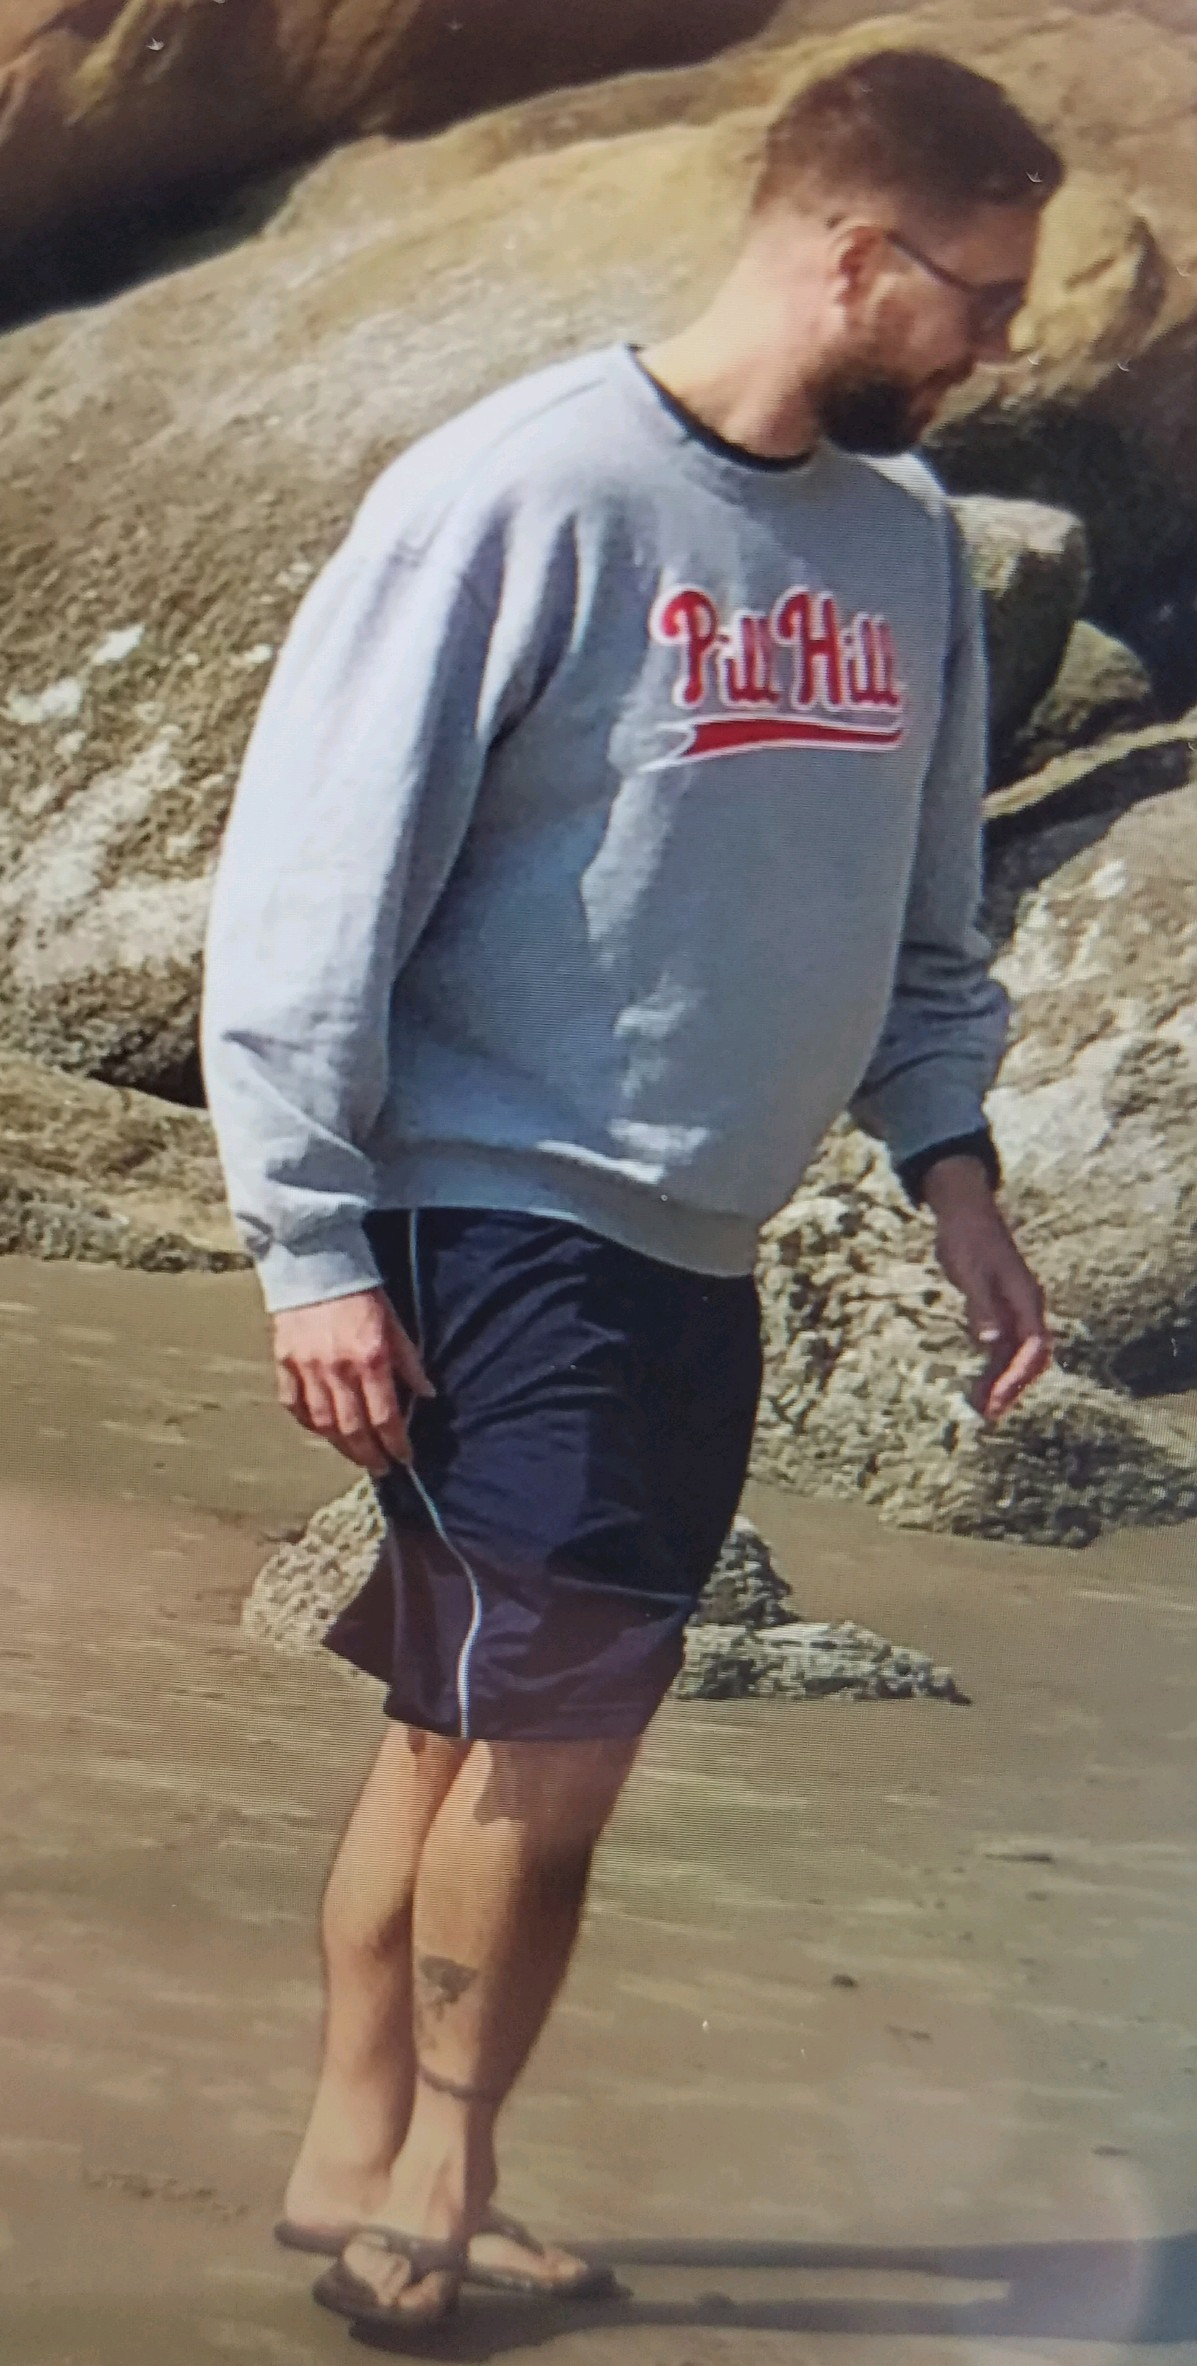 Crews are searching for 40-year-old Matthew Matheny who left to go to Mount St. Helens Thursday and never came home. The vehicle he was driving was found near the Blue Lake Trail Saturday. Photo courtesy Cowlitz County Sheriff's Office{ }